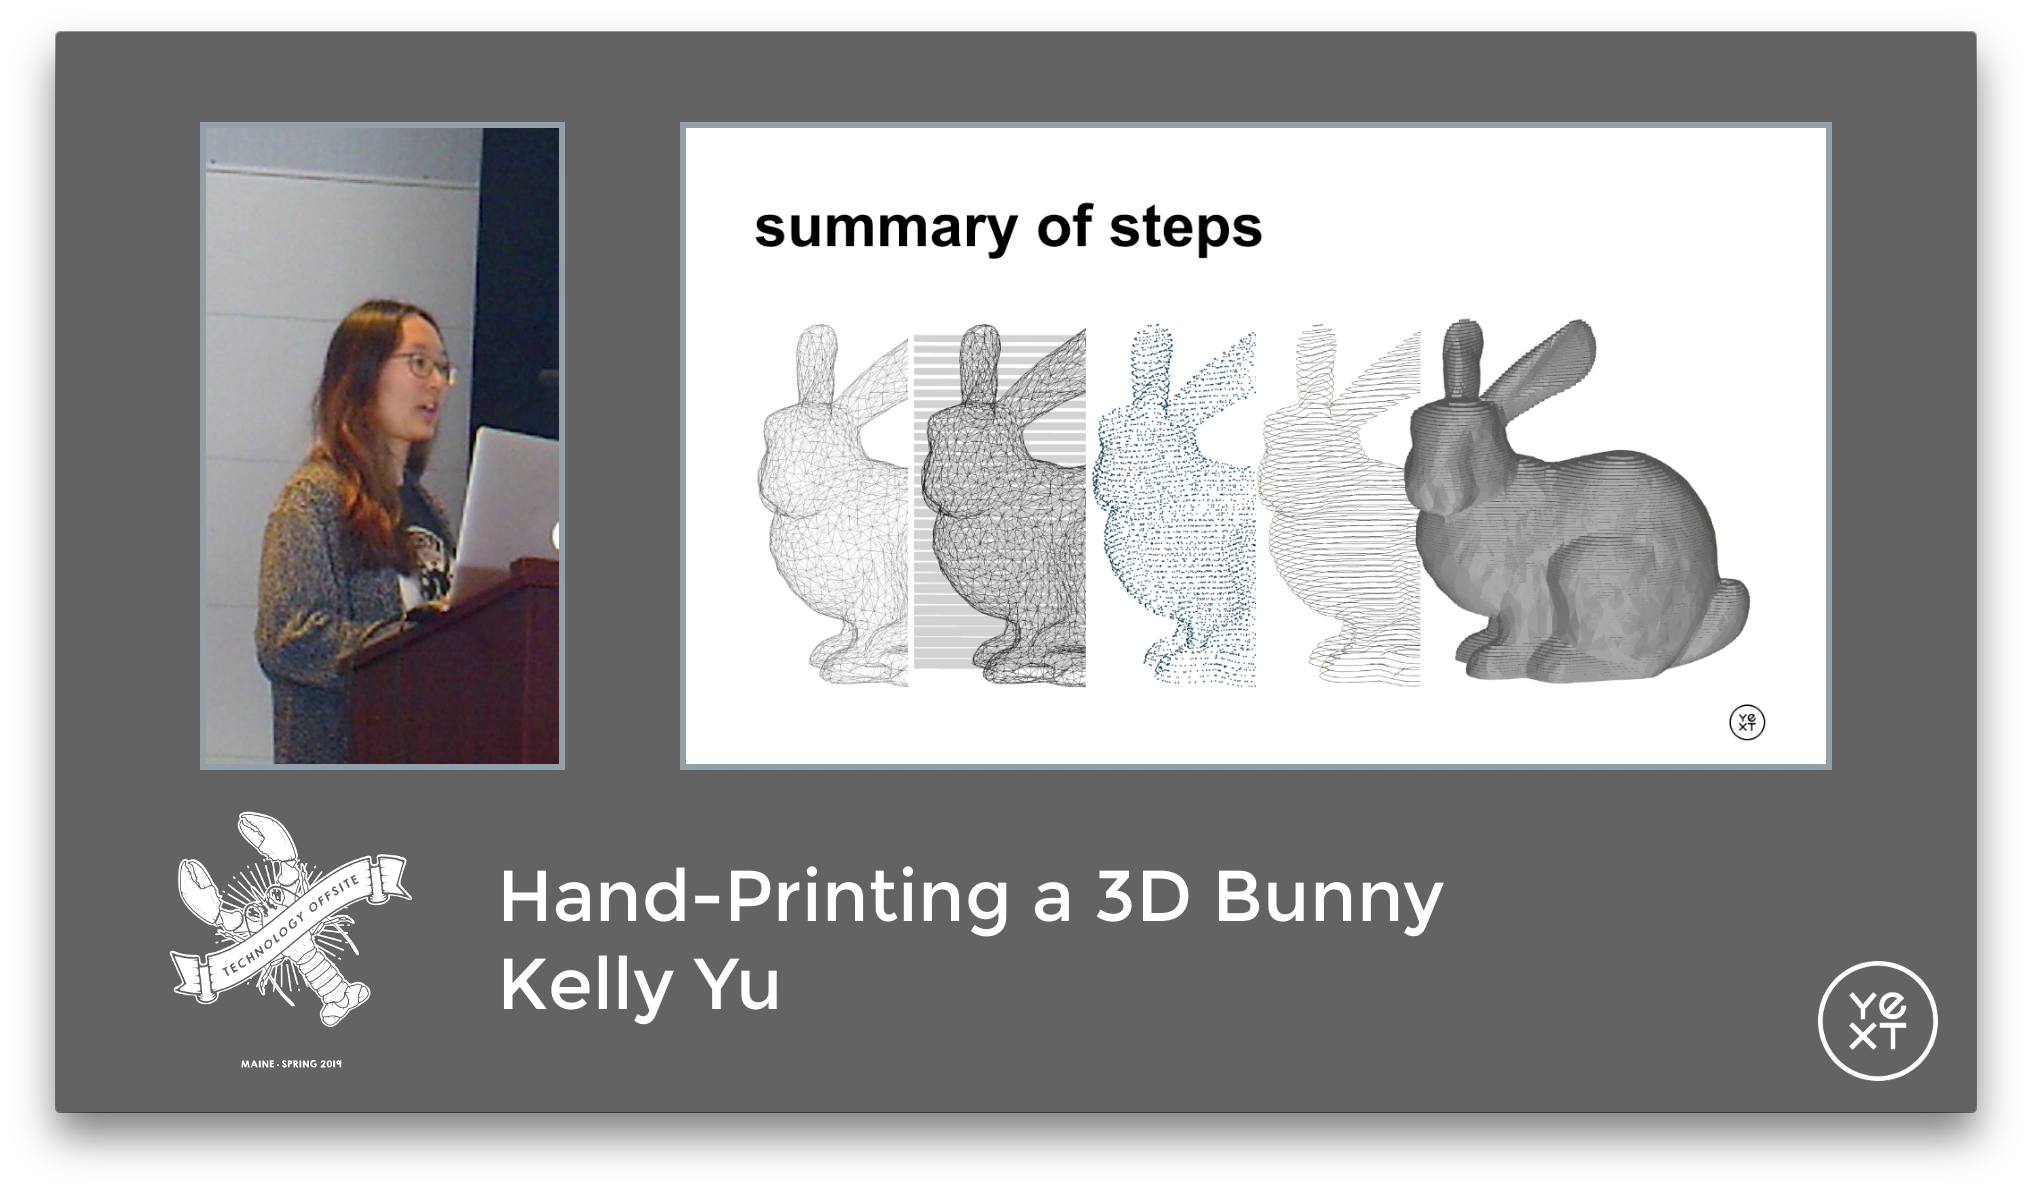 Hand-Printing a 3D Bunny